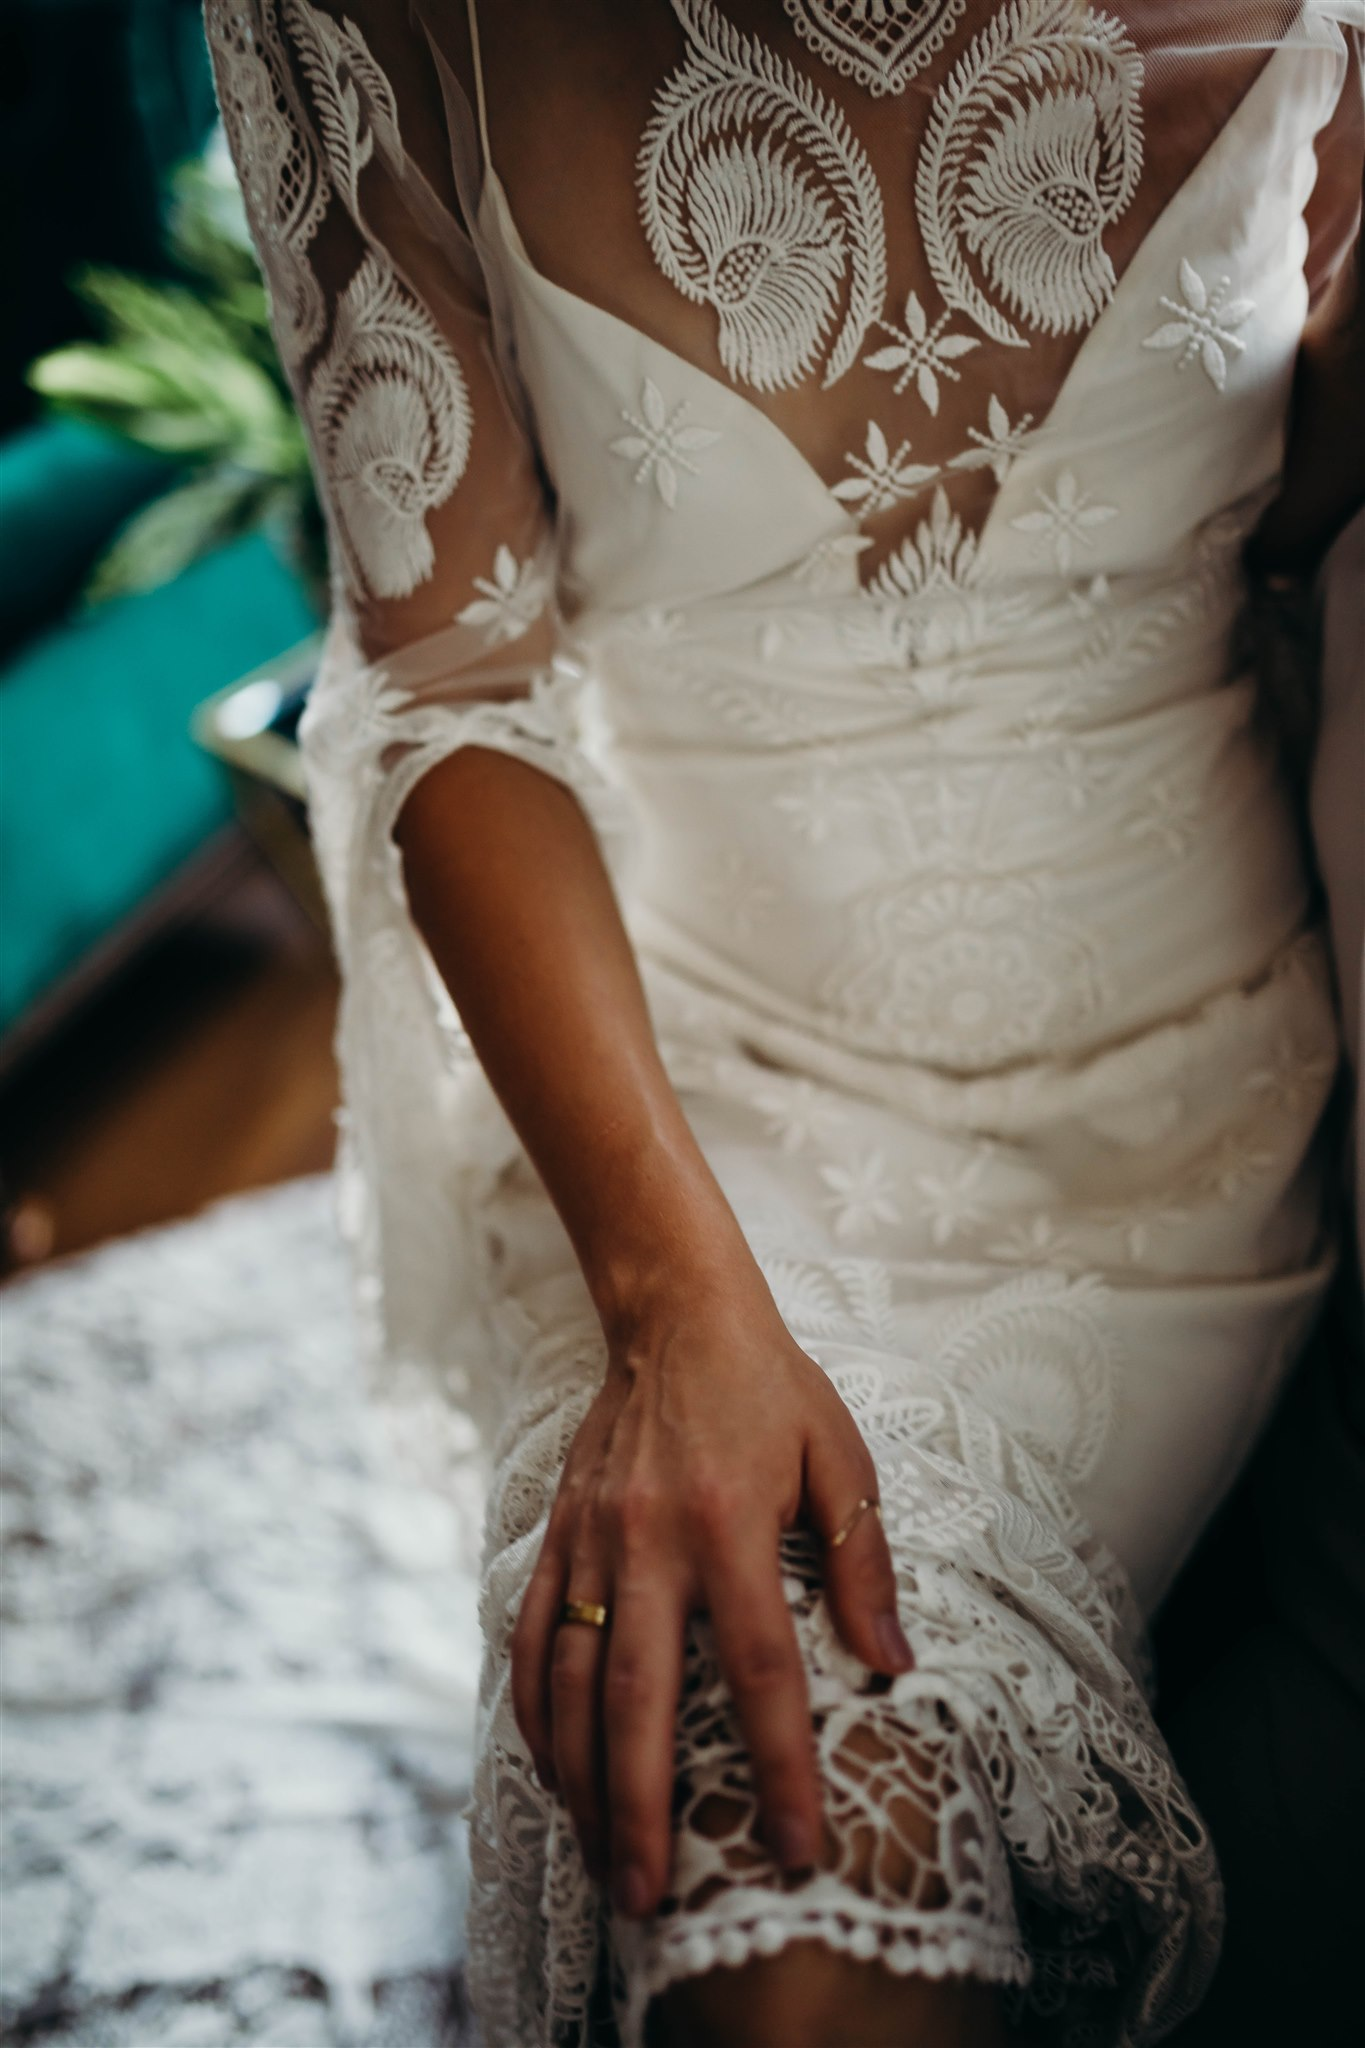 Boho Wedding Dress for Winter Wedding Styled Shoot featured on Nashville Bride Guide